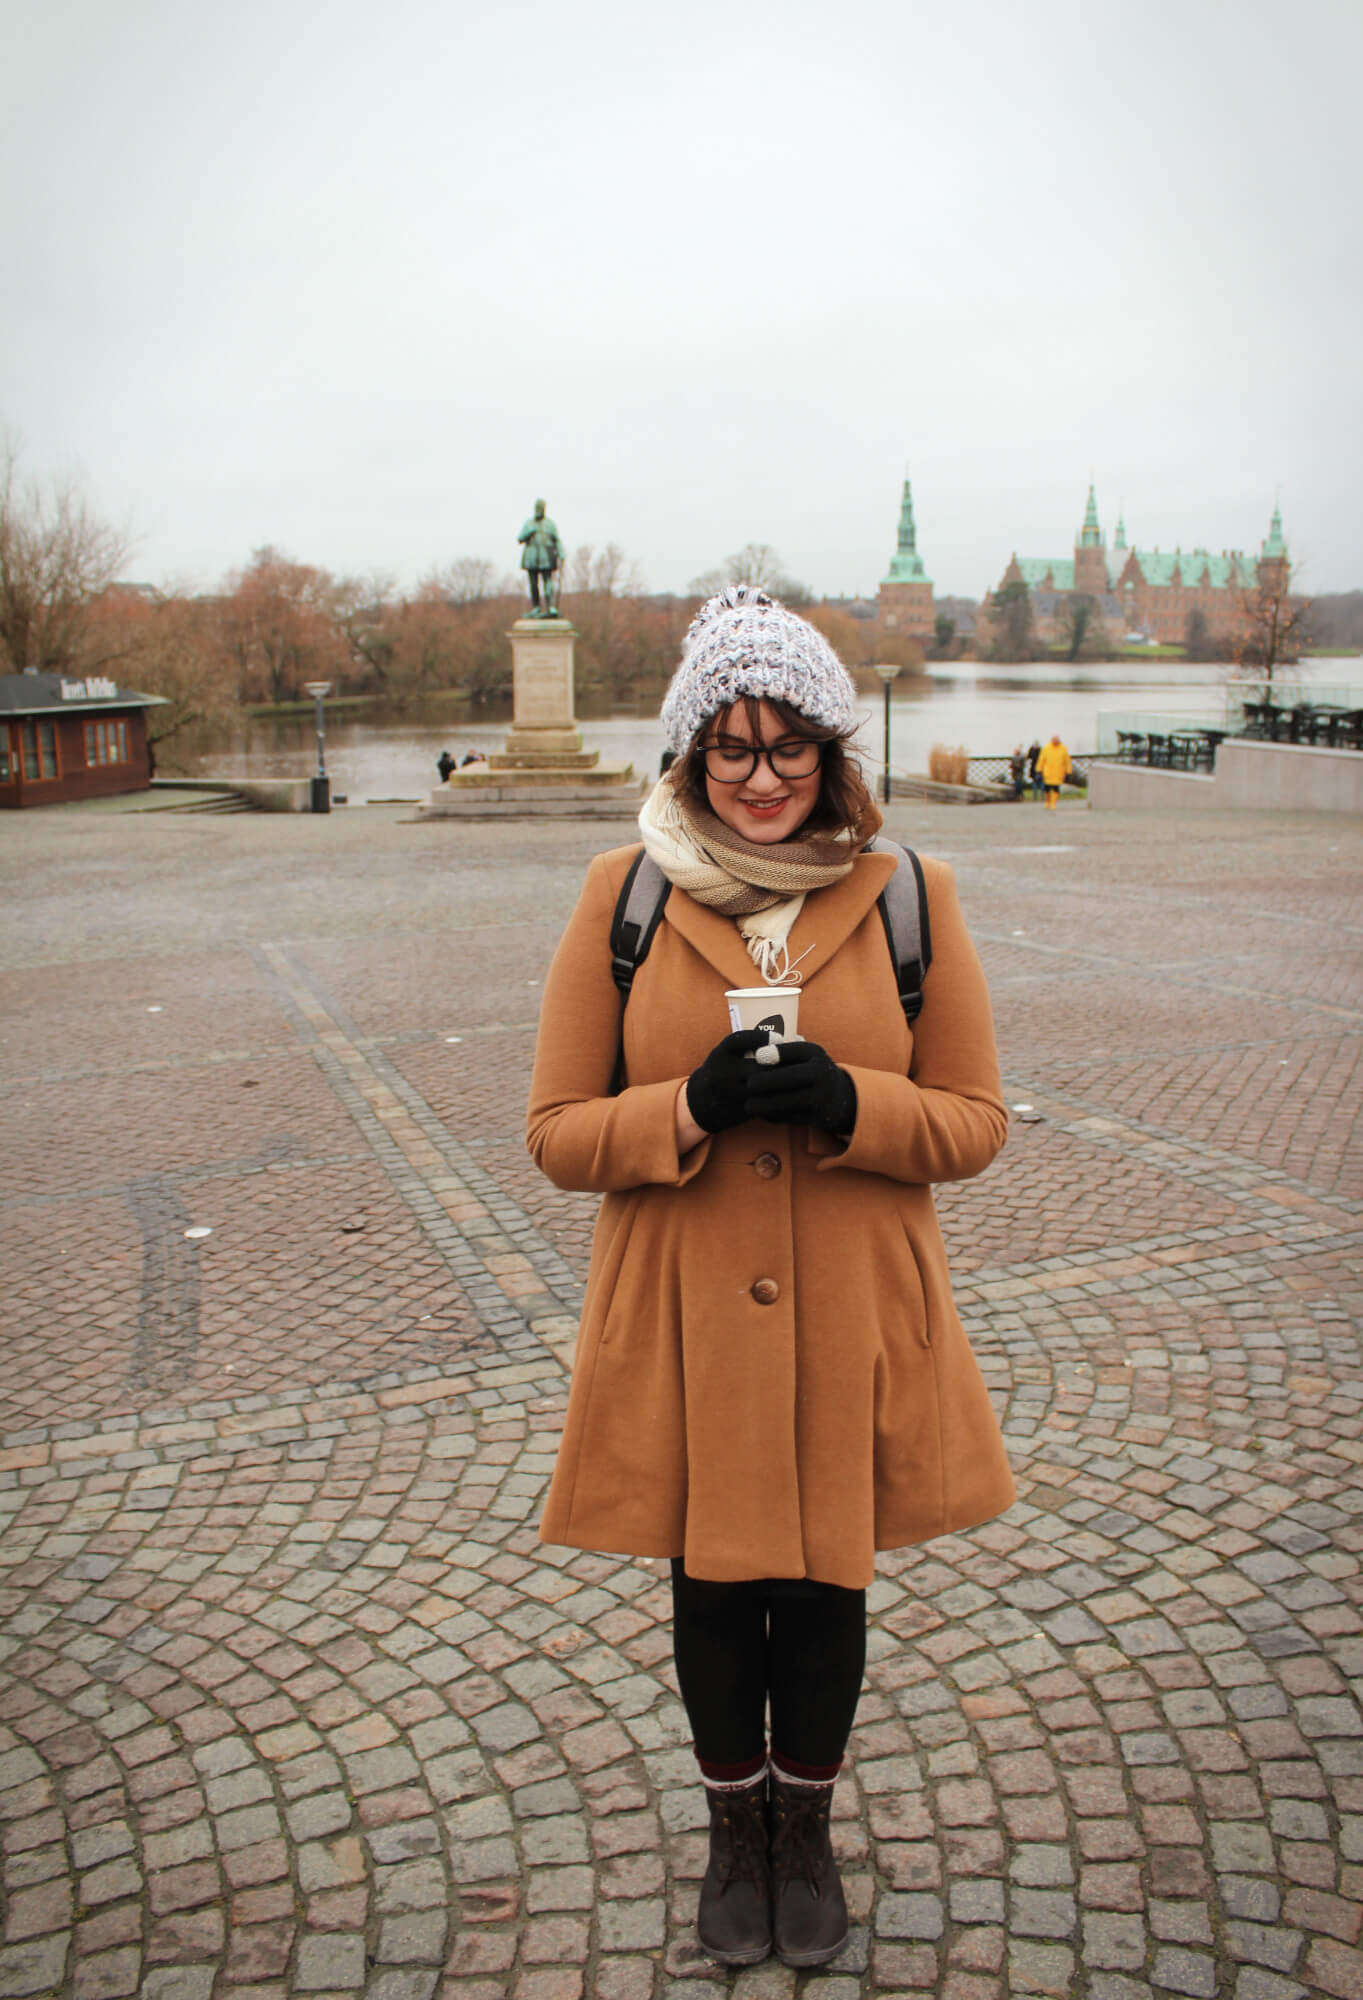 Hygge and free hot chocolate in front of Frederiksborg Castle in Copenhagen Denmark.